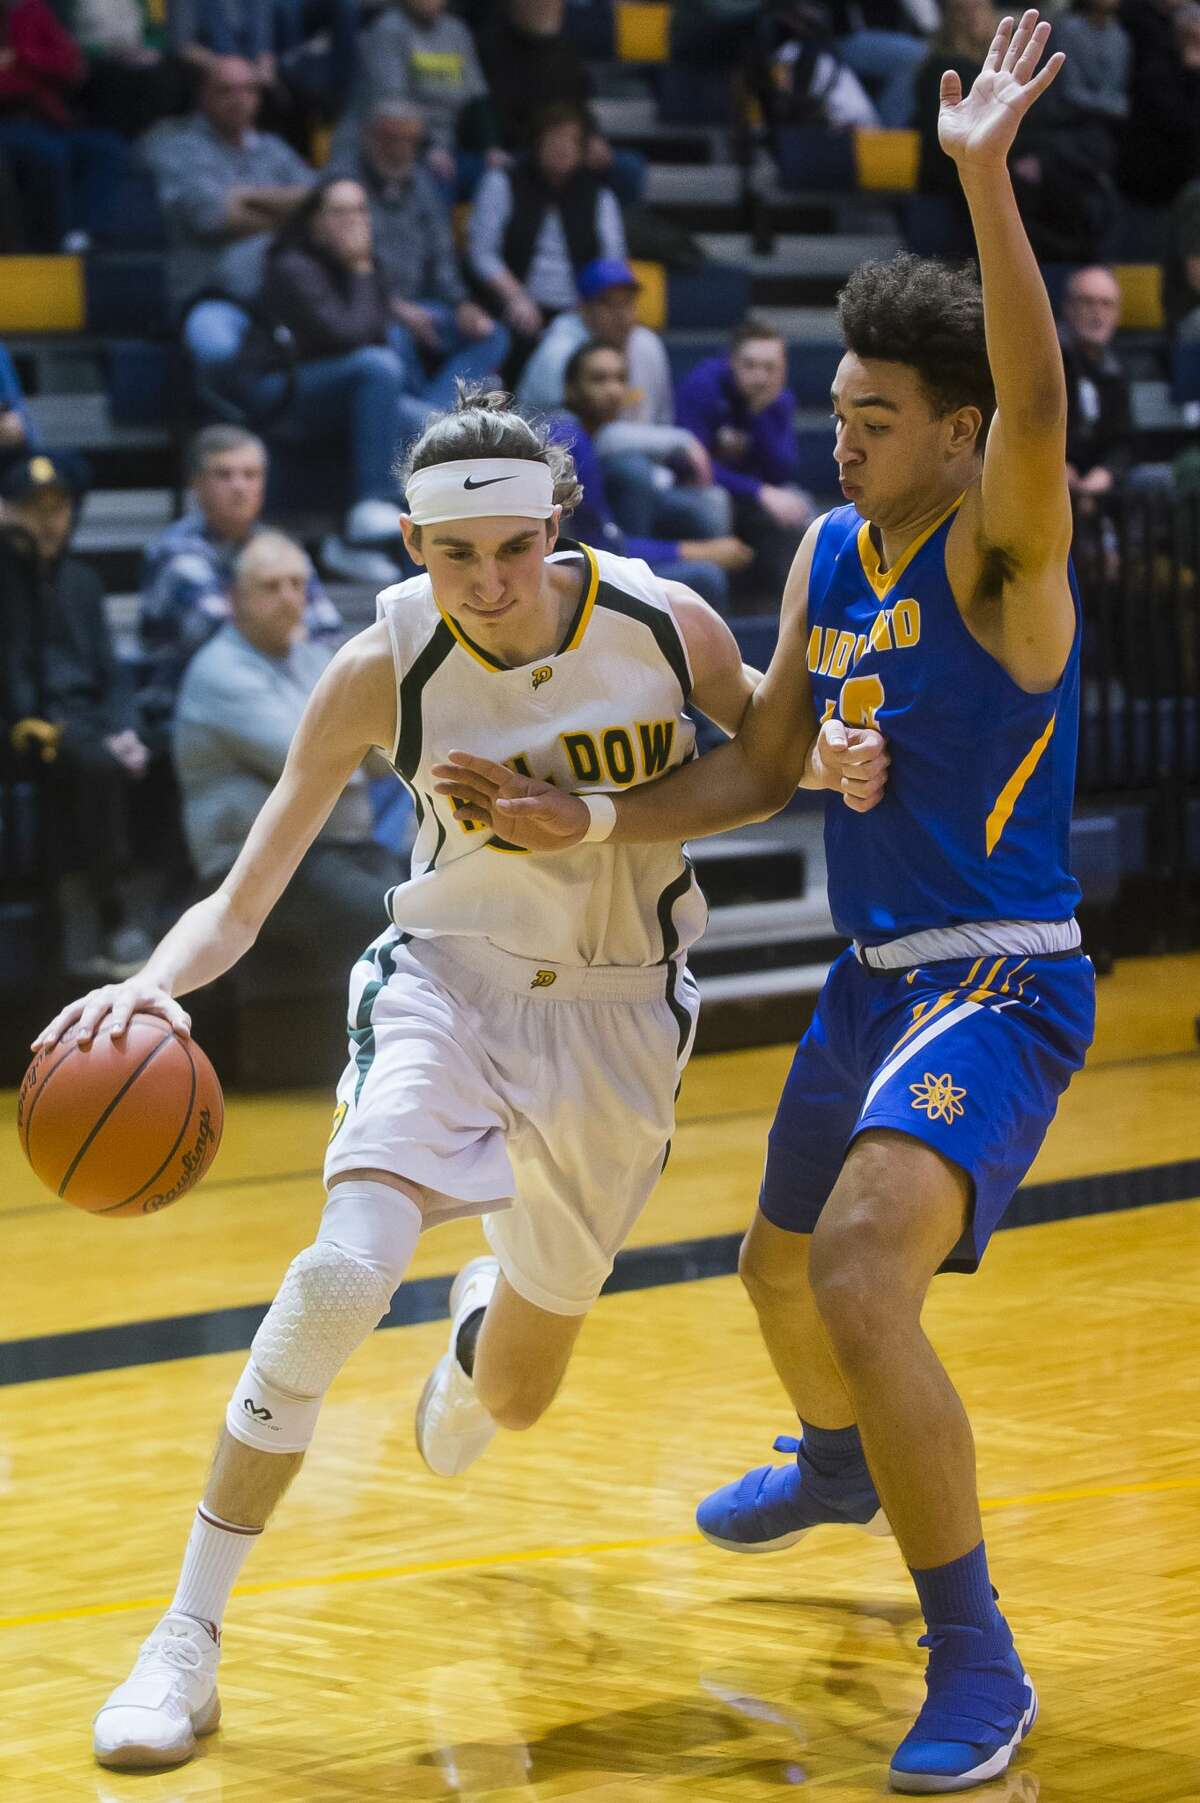 Dow senior Zac Chichester dribbles toward the basket while Midland junior Isaiah Bridges guards him during their district quarterfinals game on Monday, March 5, 2018 at Mt. Pleasant High School. Dow won 54-40 and will advance to play Mt. Pleasant on Wednesday. (Katy Kildee/kkildee@mdn.net)